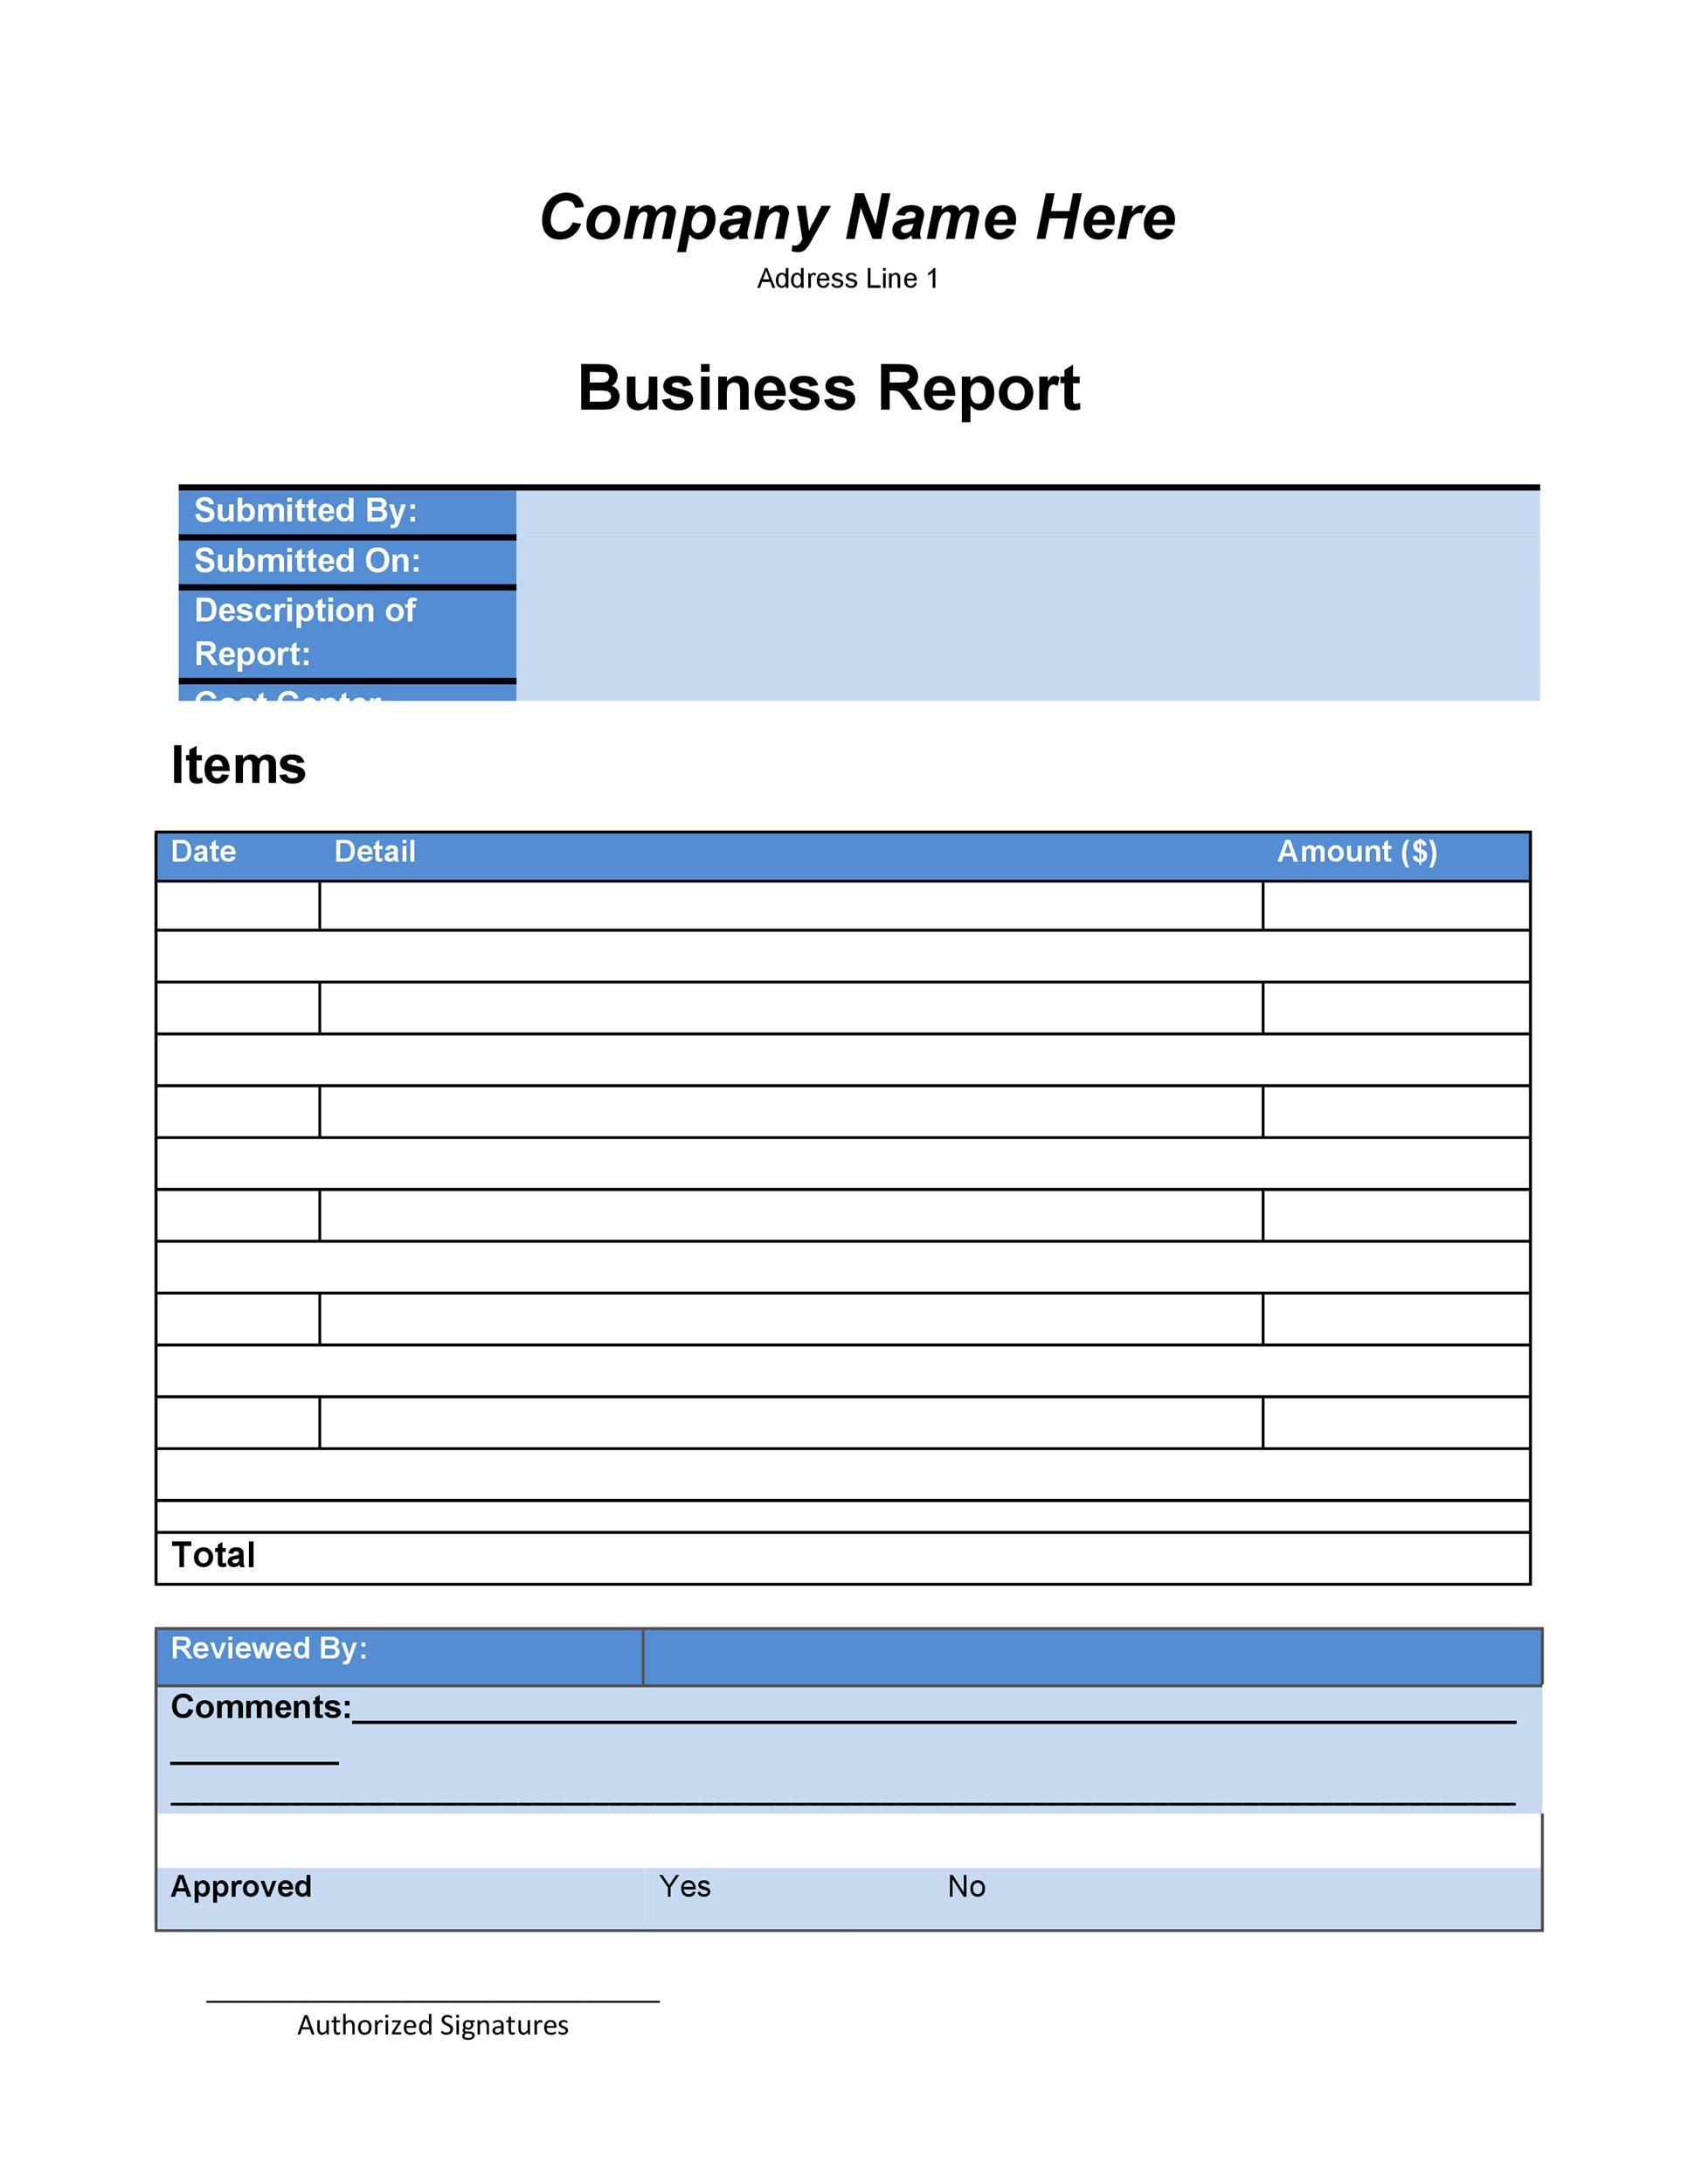 Report templates ukrandiffusion 30 business report templates format examples template lab flashek Choice Image